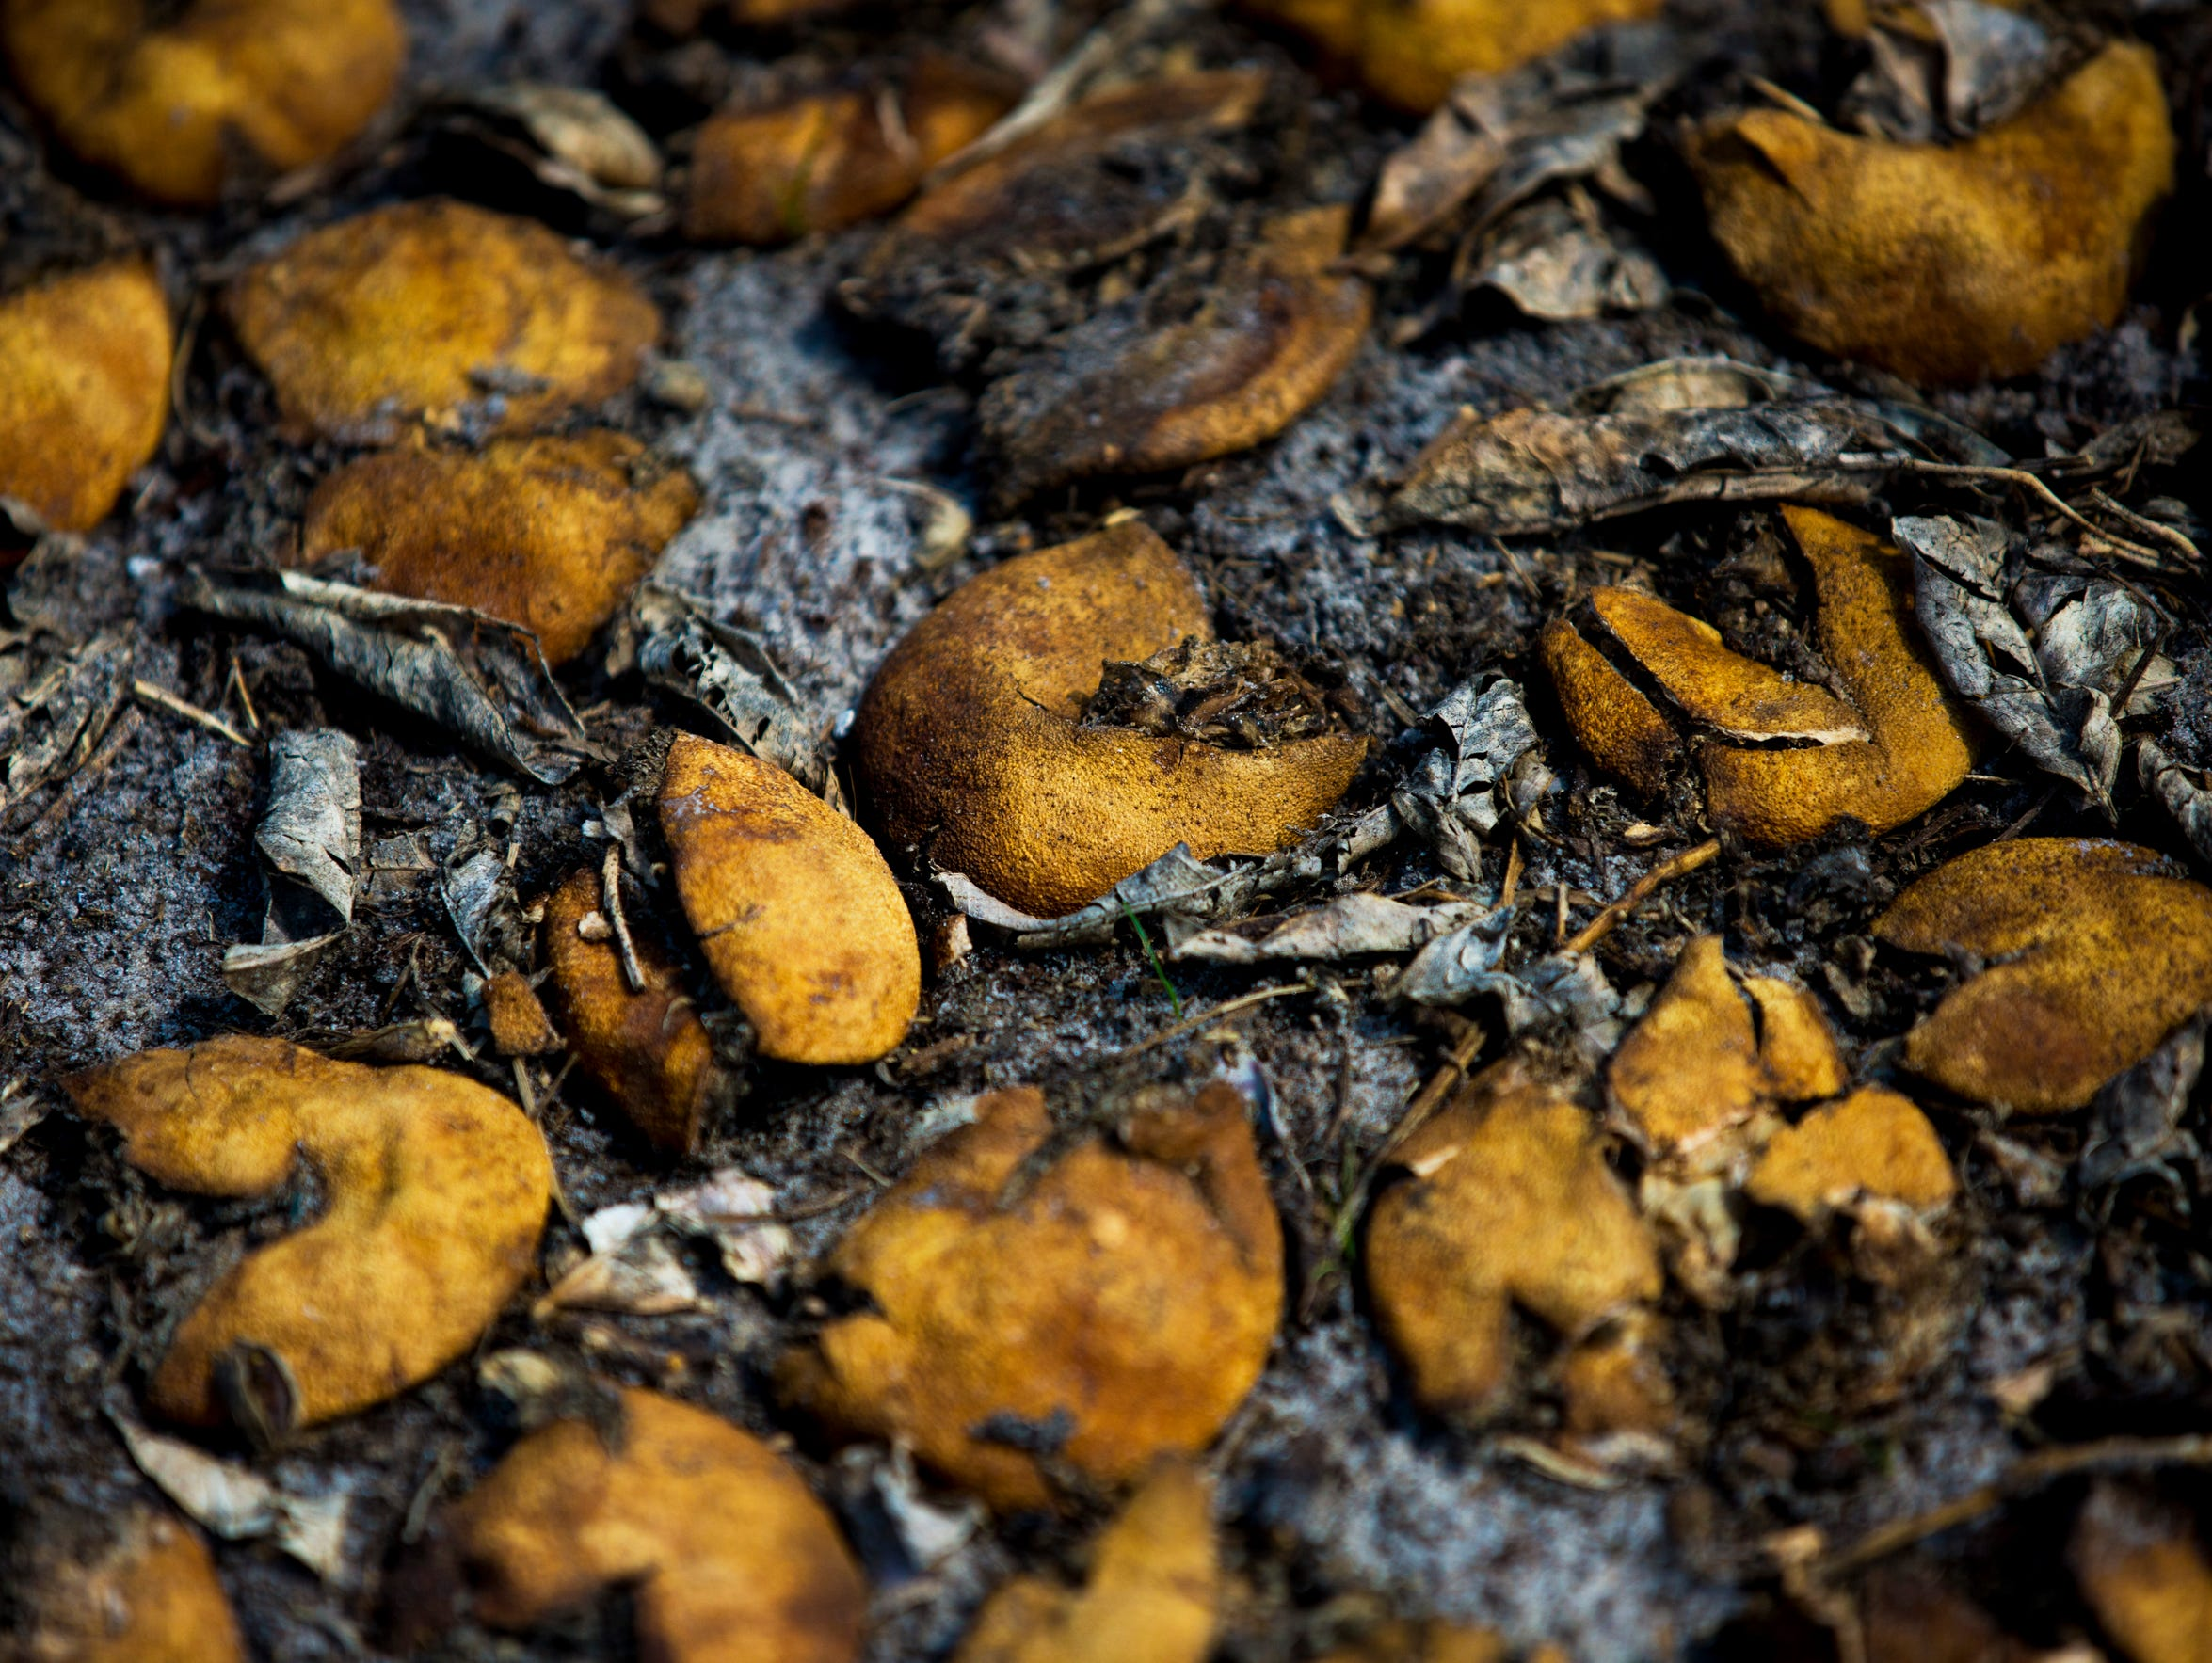 Rotten oranges cover the ground at one of Paul Meador's